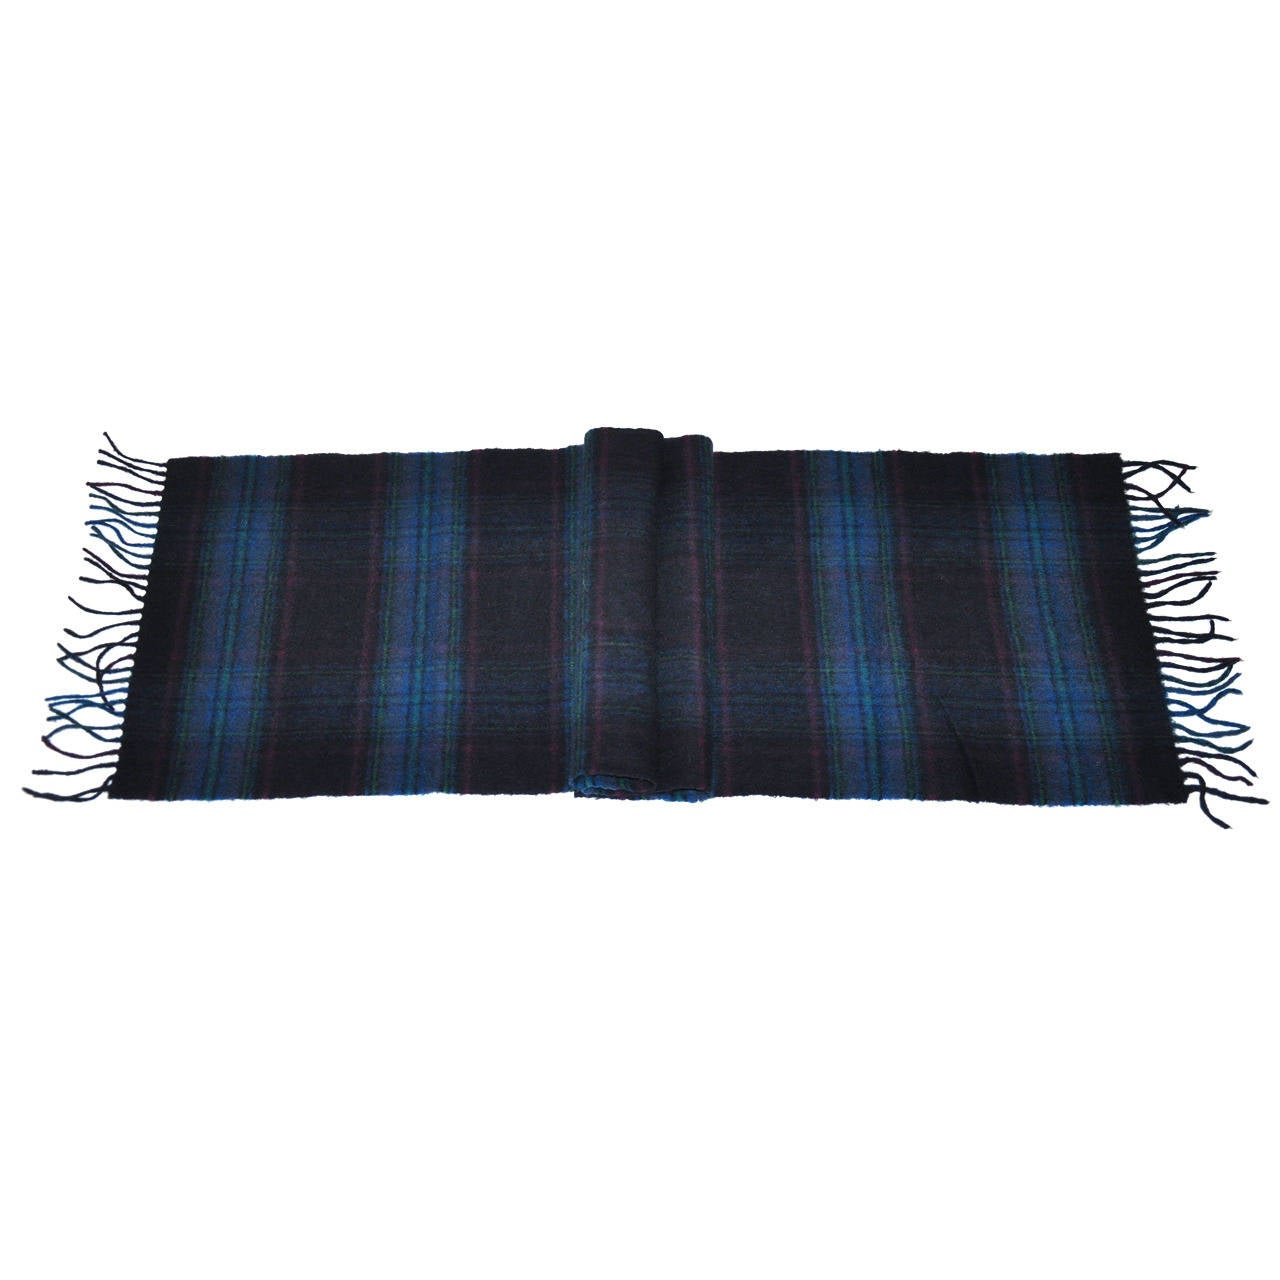 Harrods Multi-Color Plaid Cashmere and Wool with Fringe Scarf For Sale